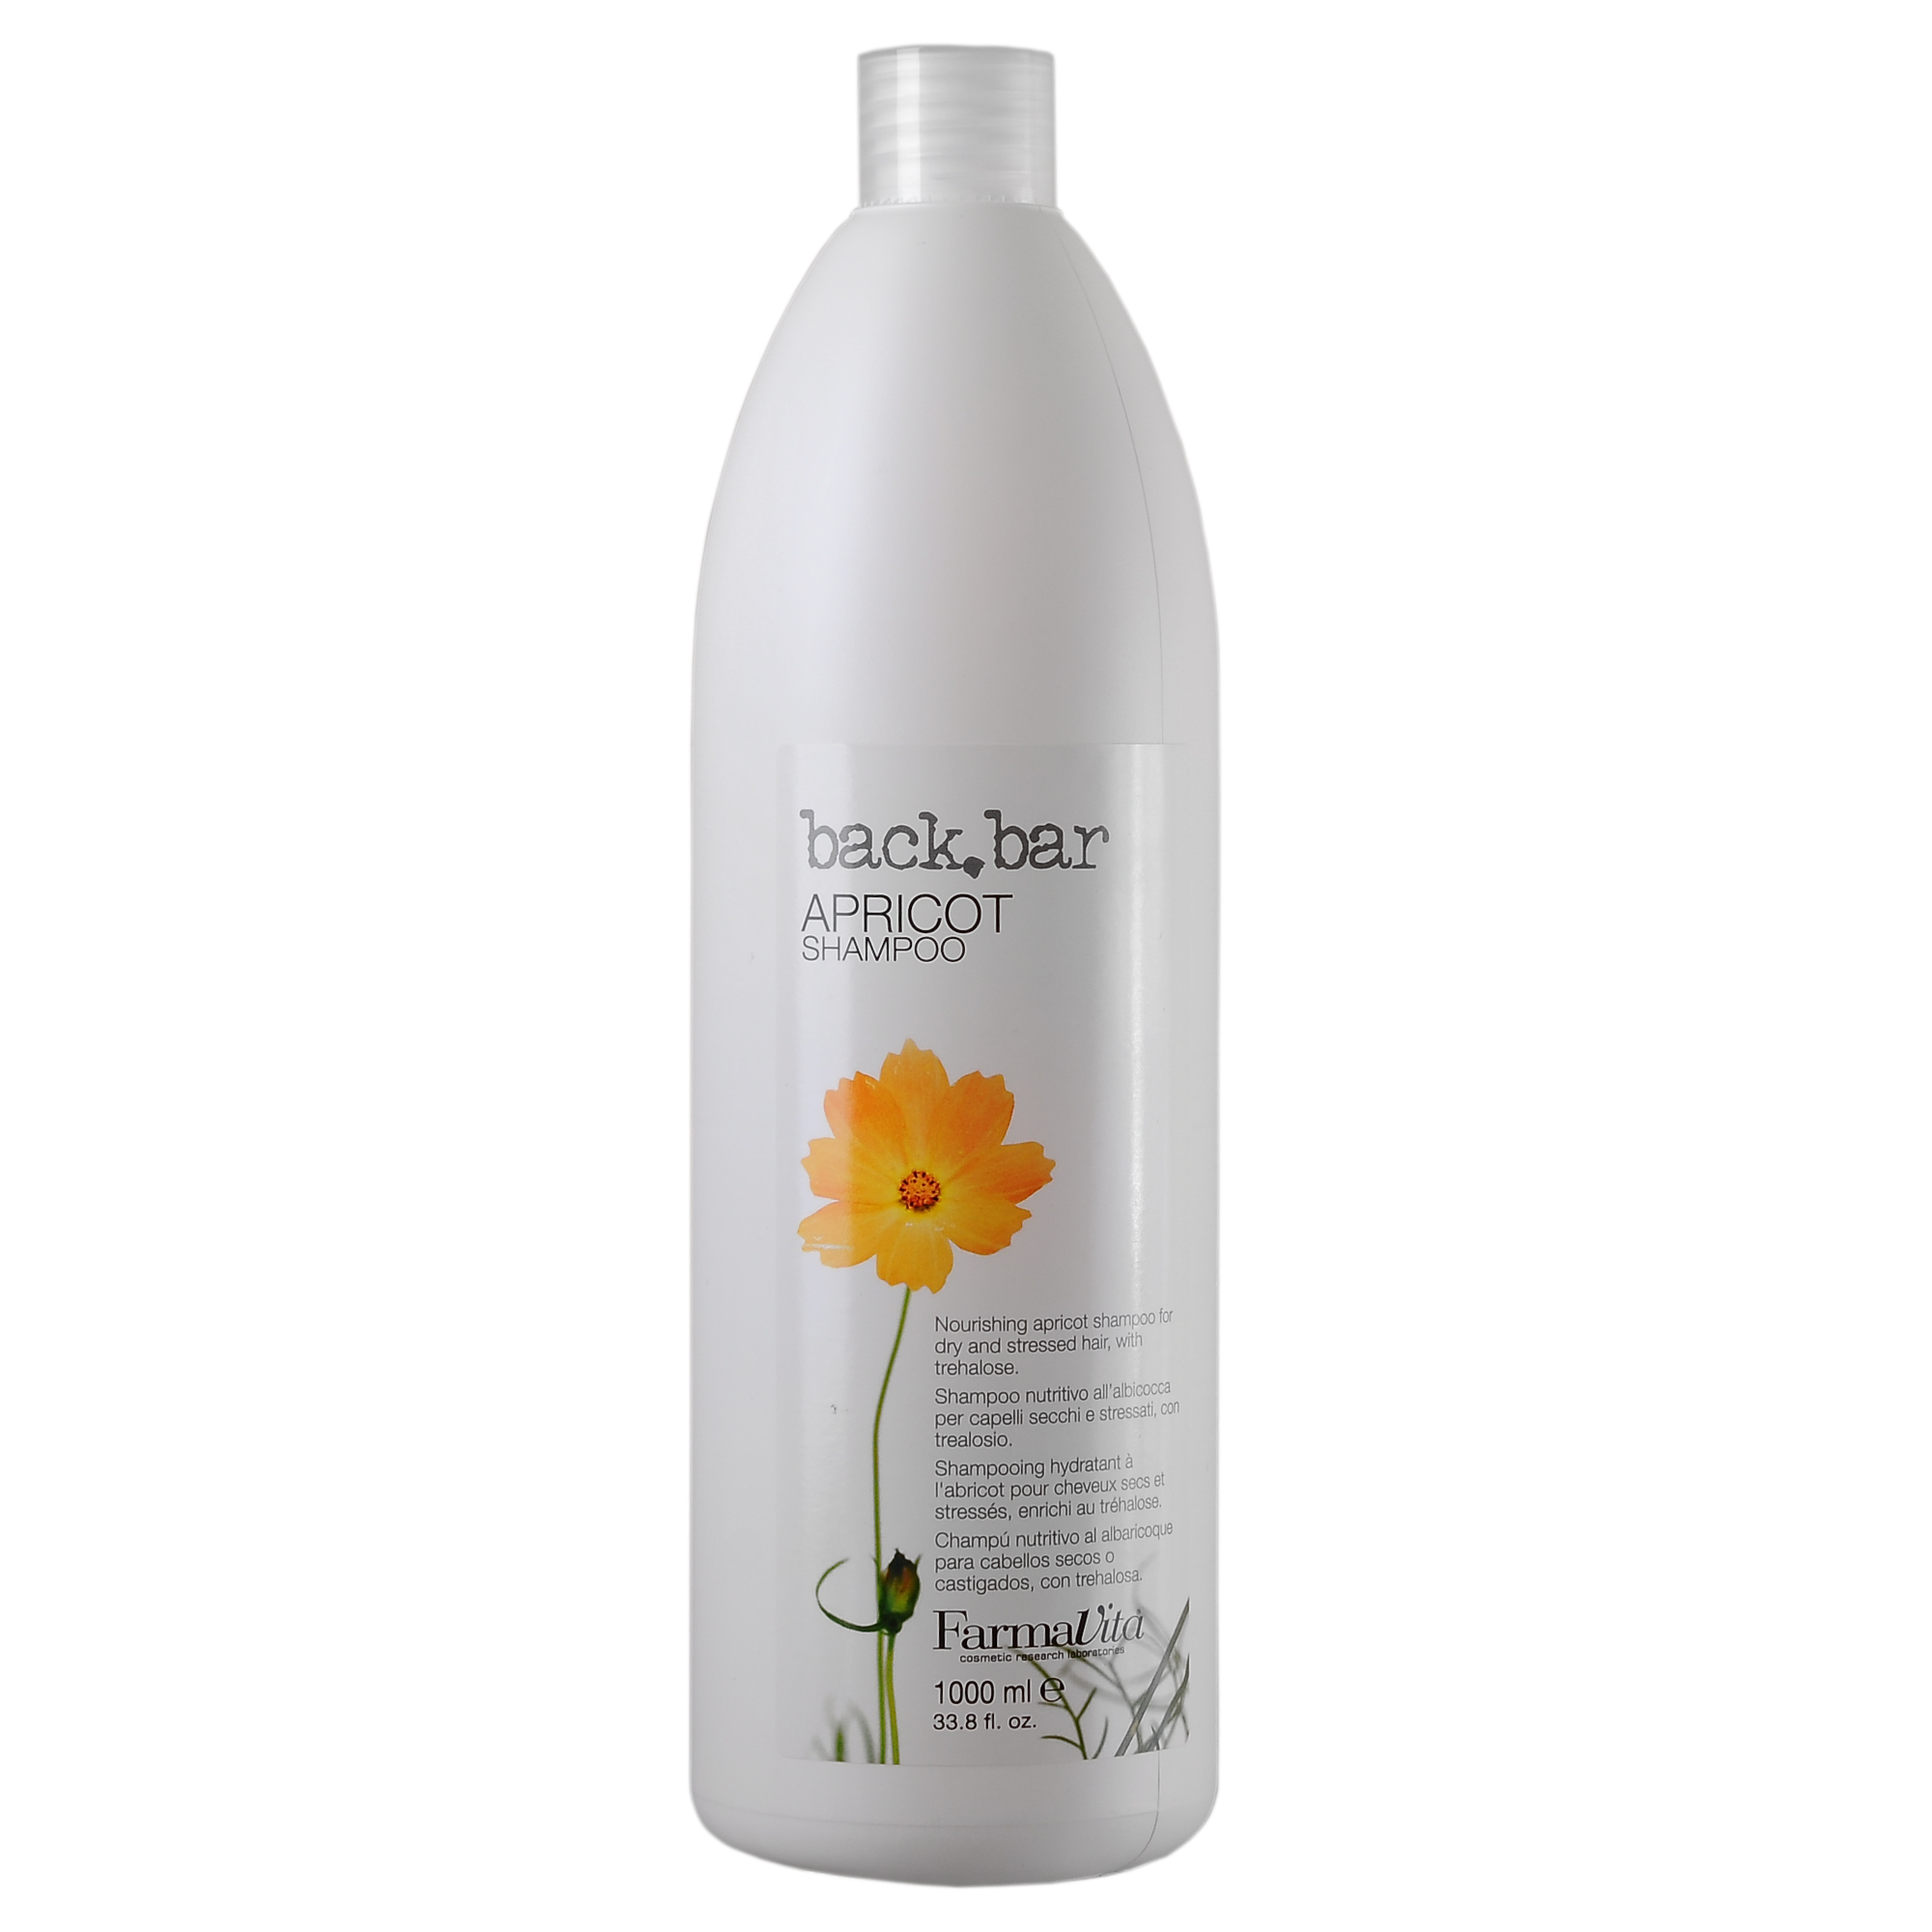 FARMAVITA Шампунь абрикос Apricot Shampoo / BACK BAR 1000 мл